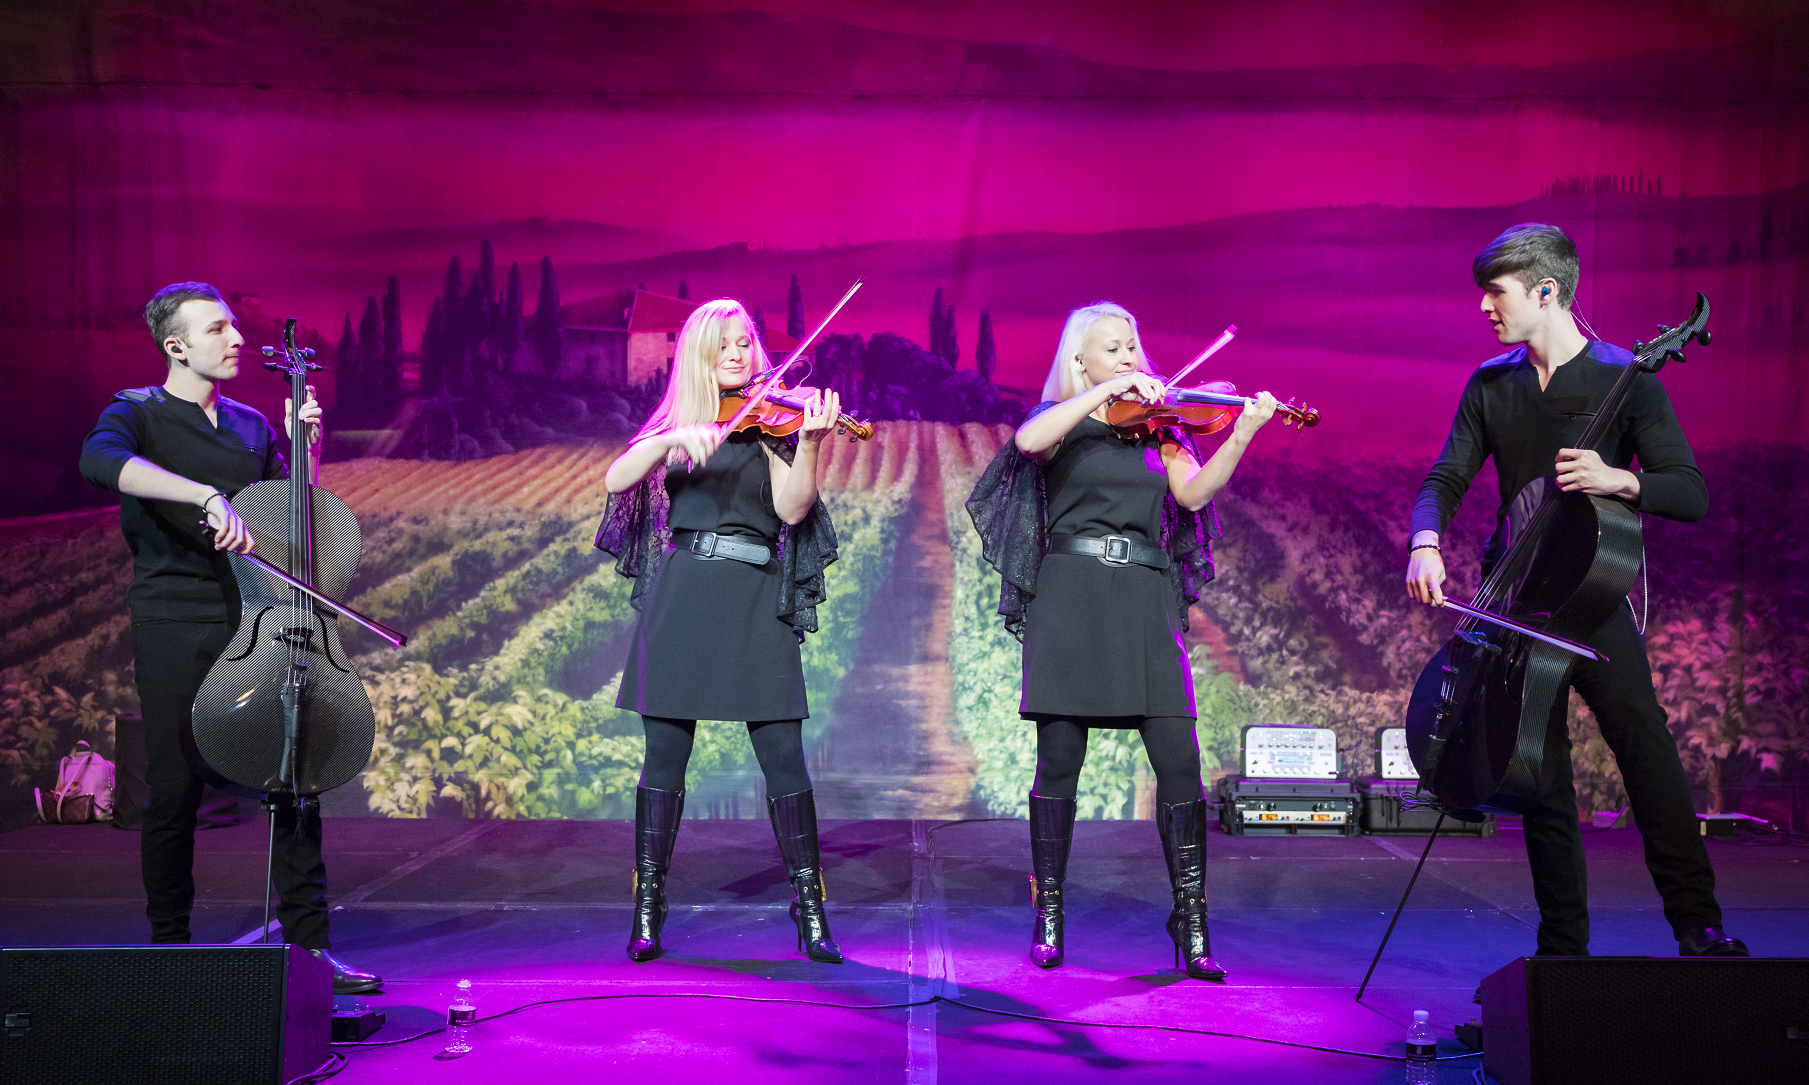 A violin duo and cello duo performance on a stage in front of a wine country background